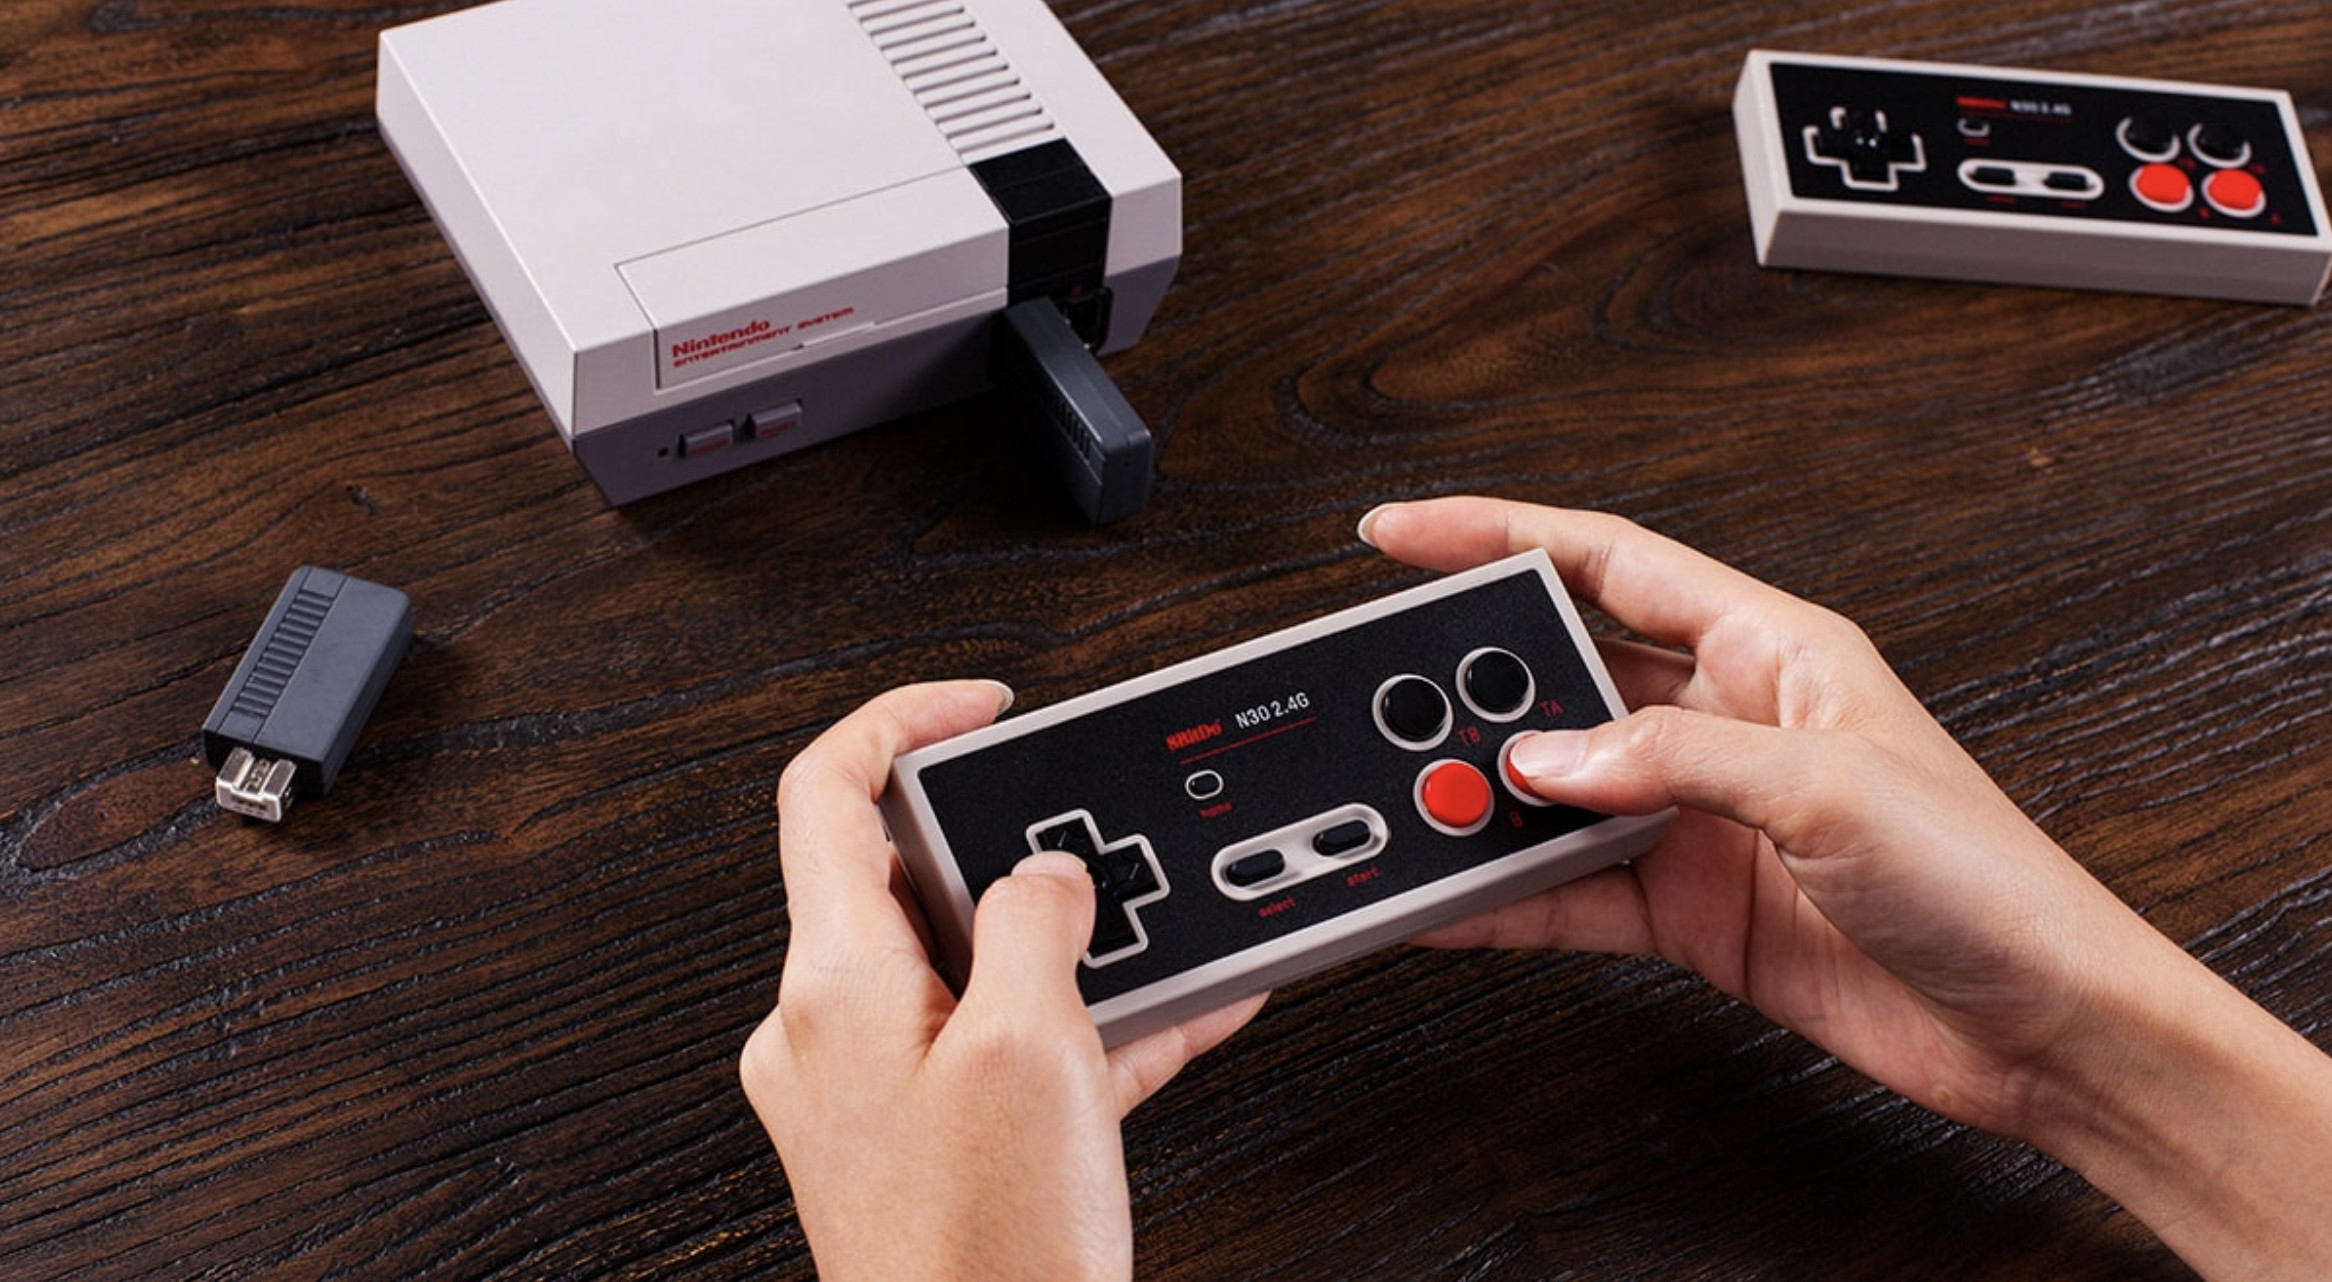 Nintendo's NES Classic is available at Best Buy and ThinkGeek